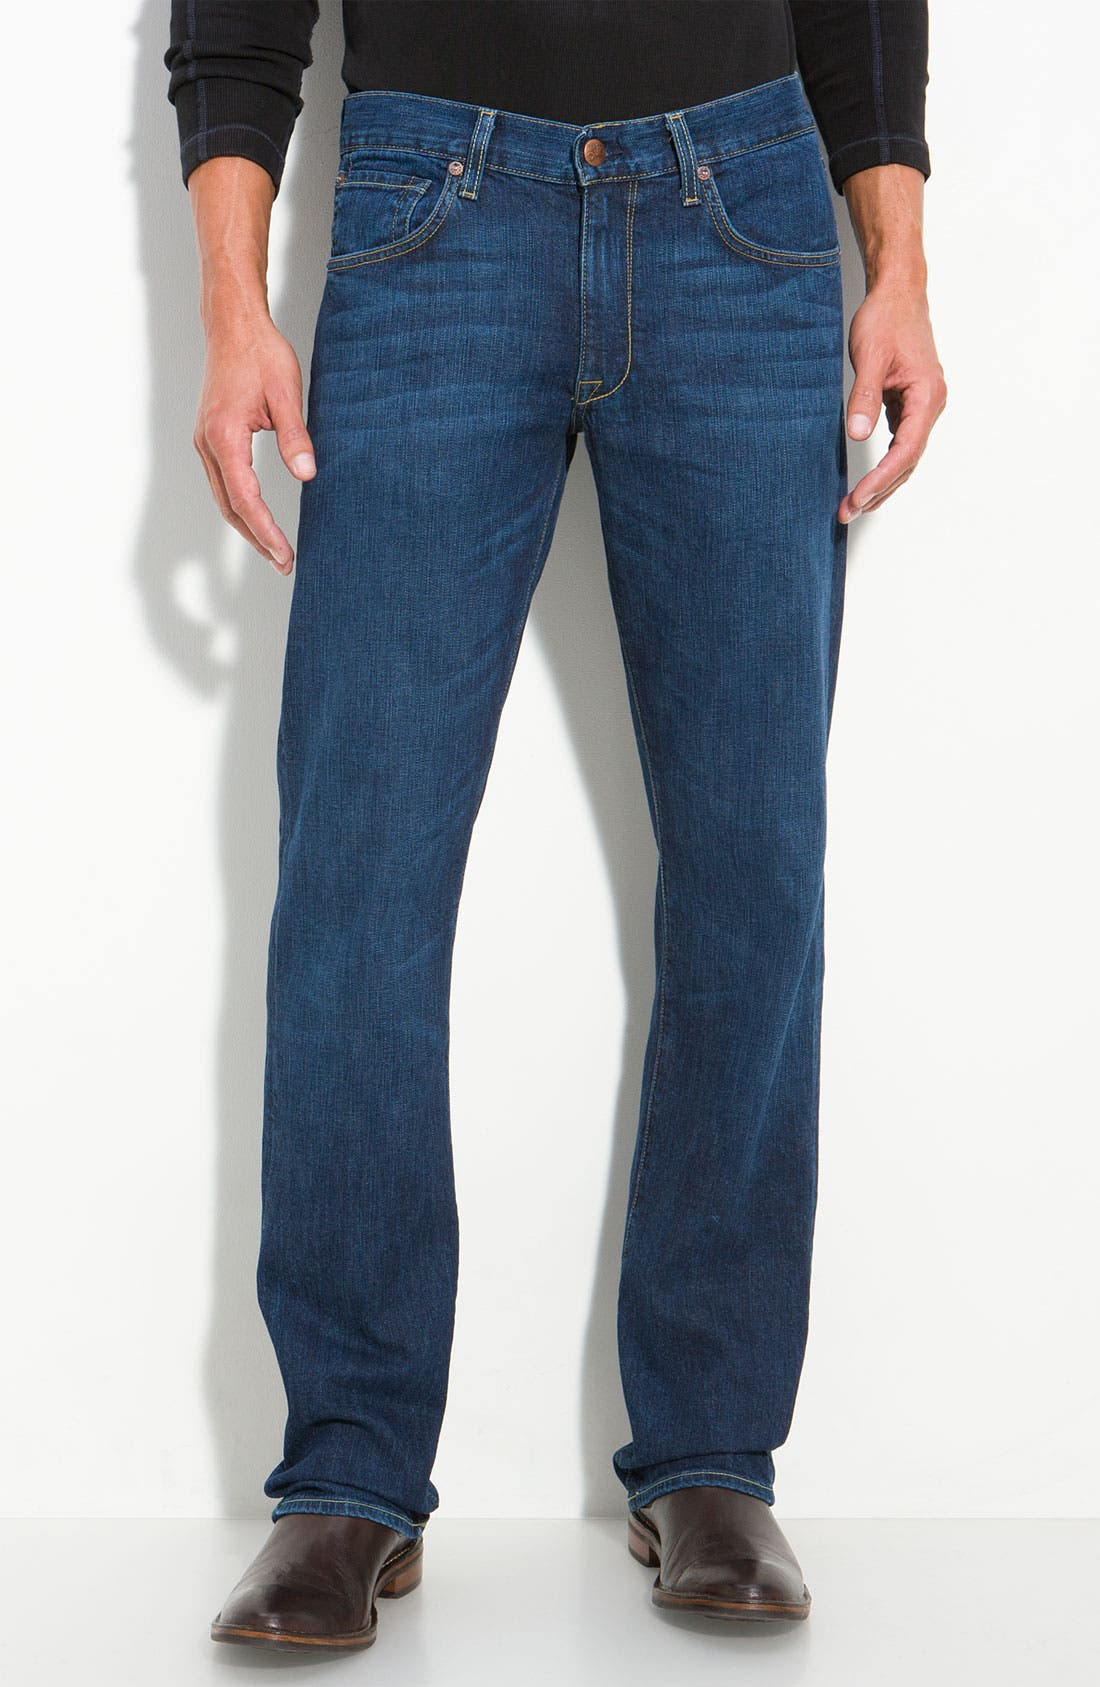 Main Image - Agave 'Gringo - Classic Fit' Straight Leg Jeans (Dana Point Dark)